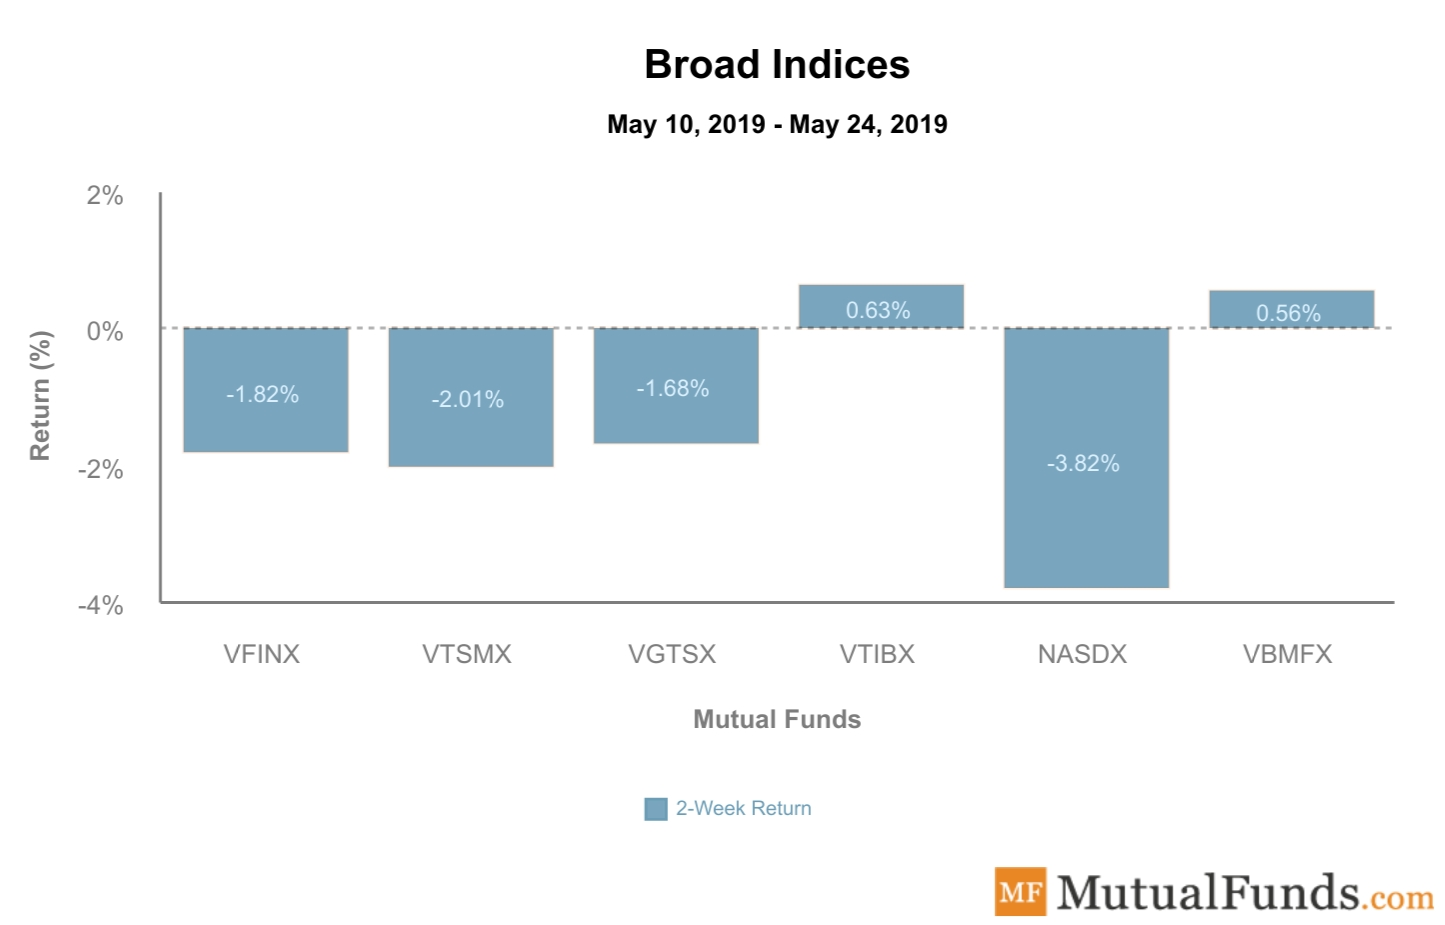 Broad Indices performance - May 28, 2019